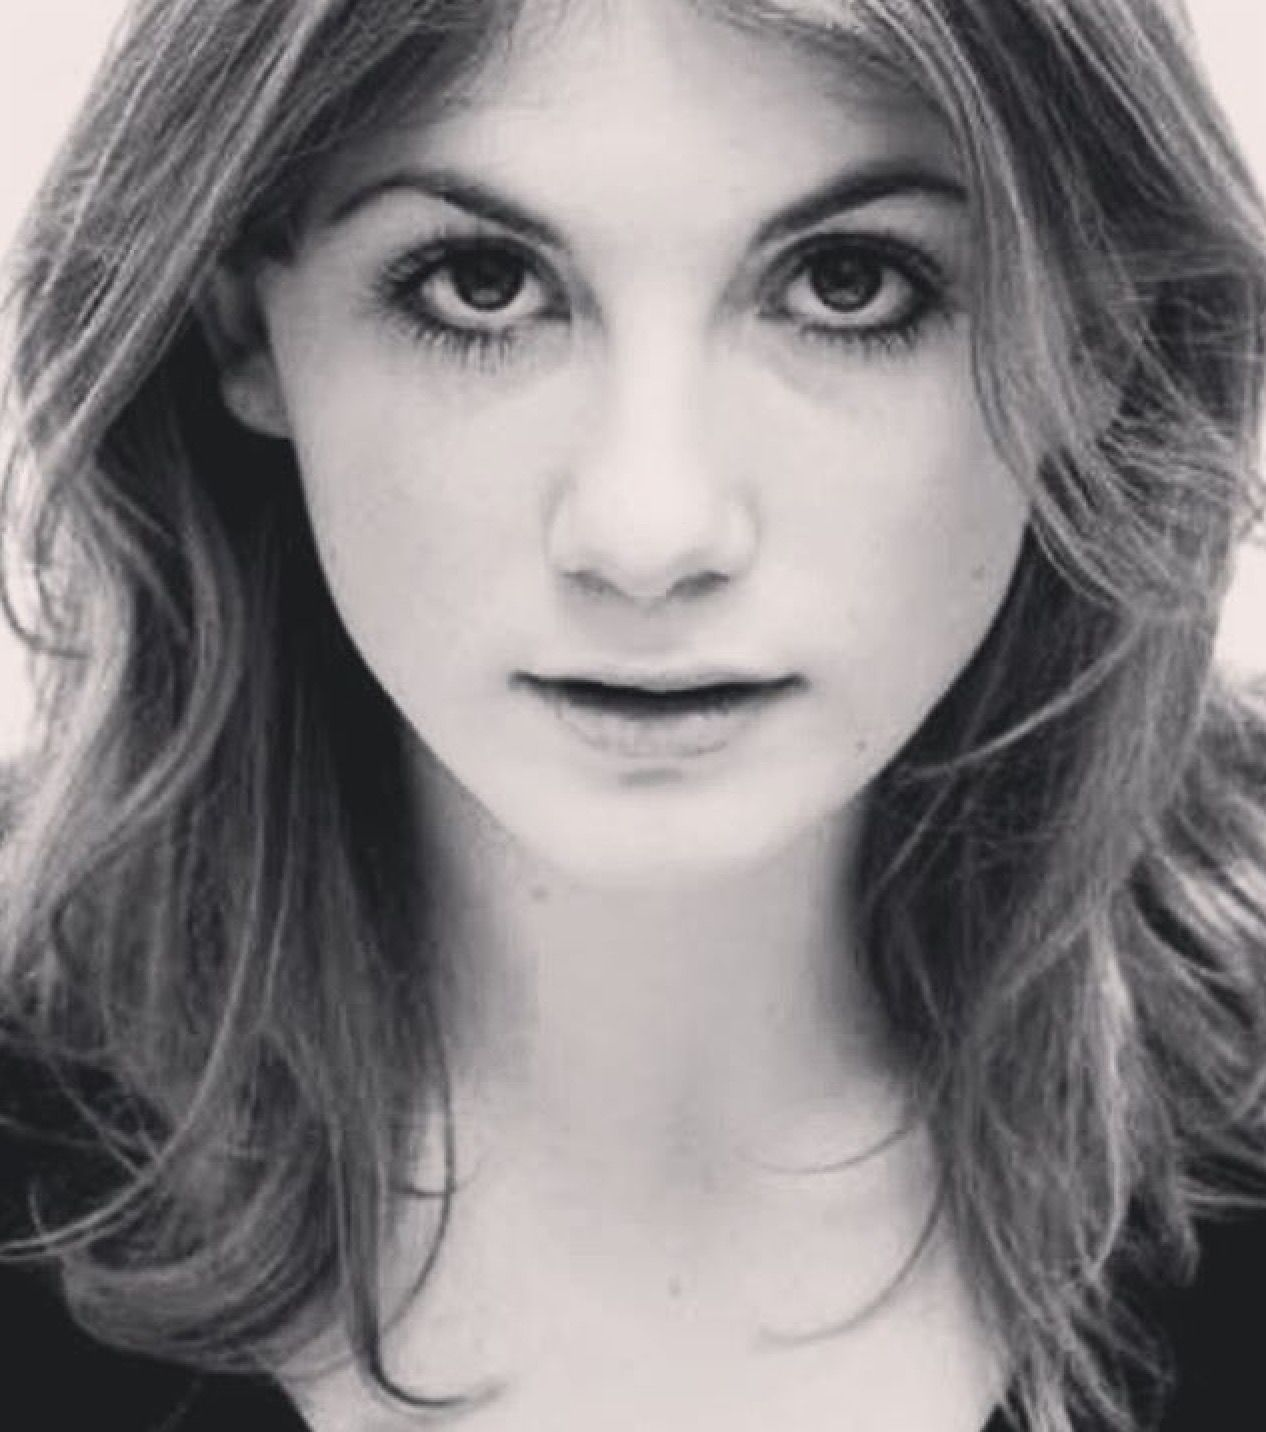 pictures Jodie Whittaker (born 1982)